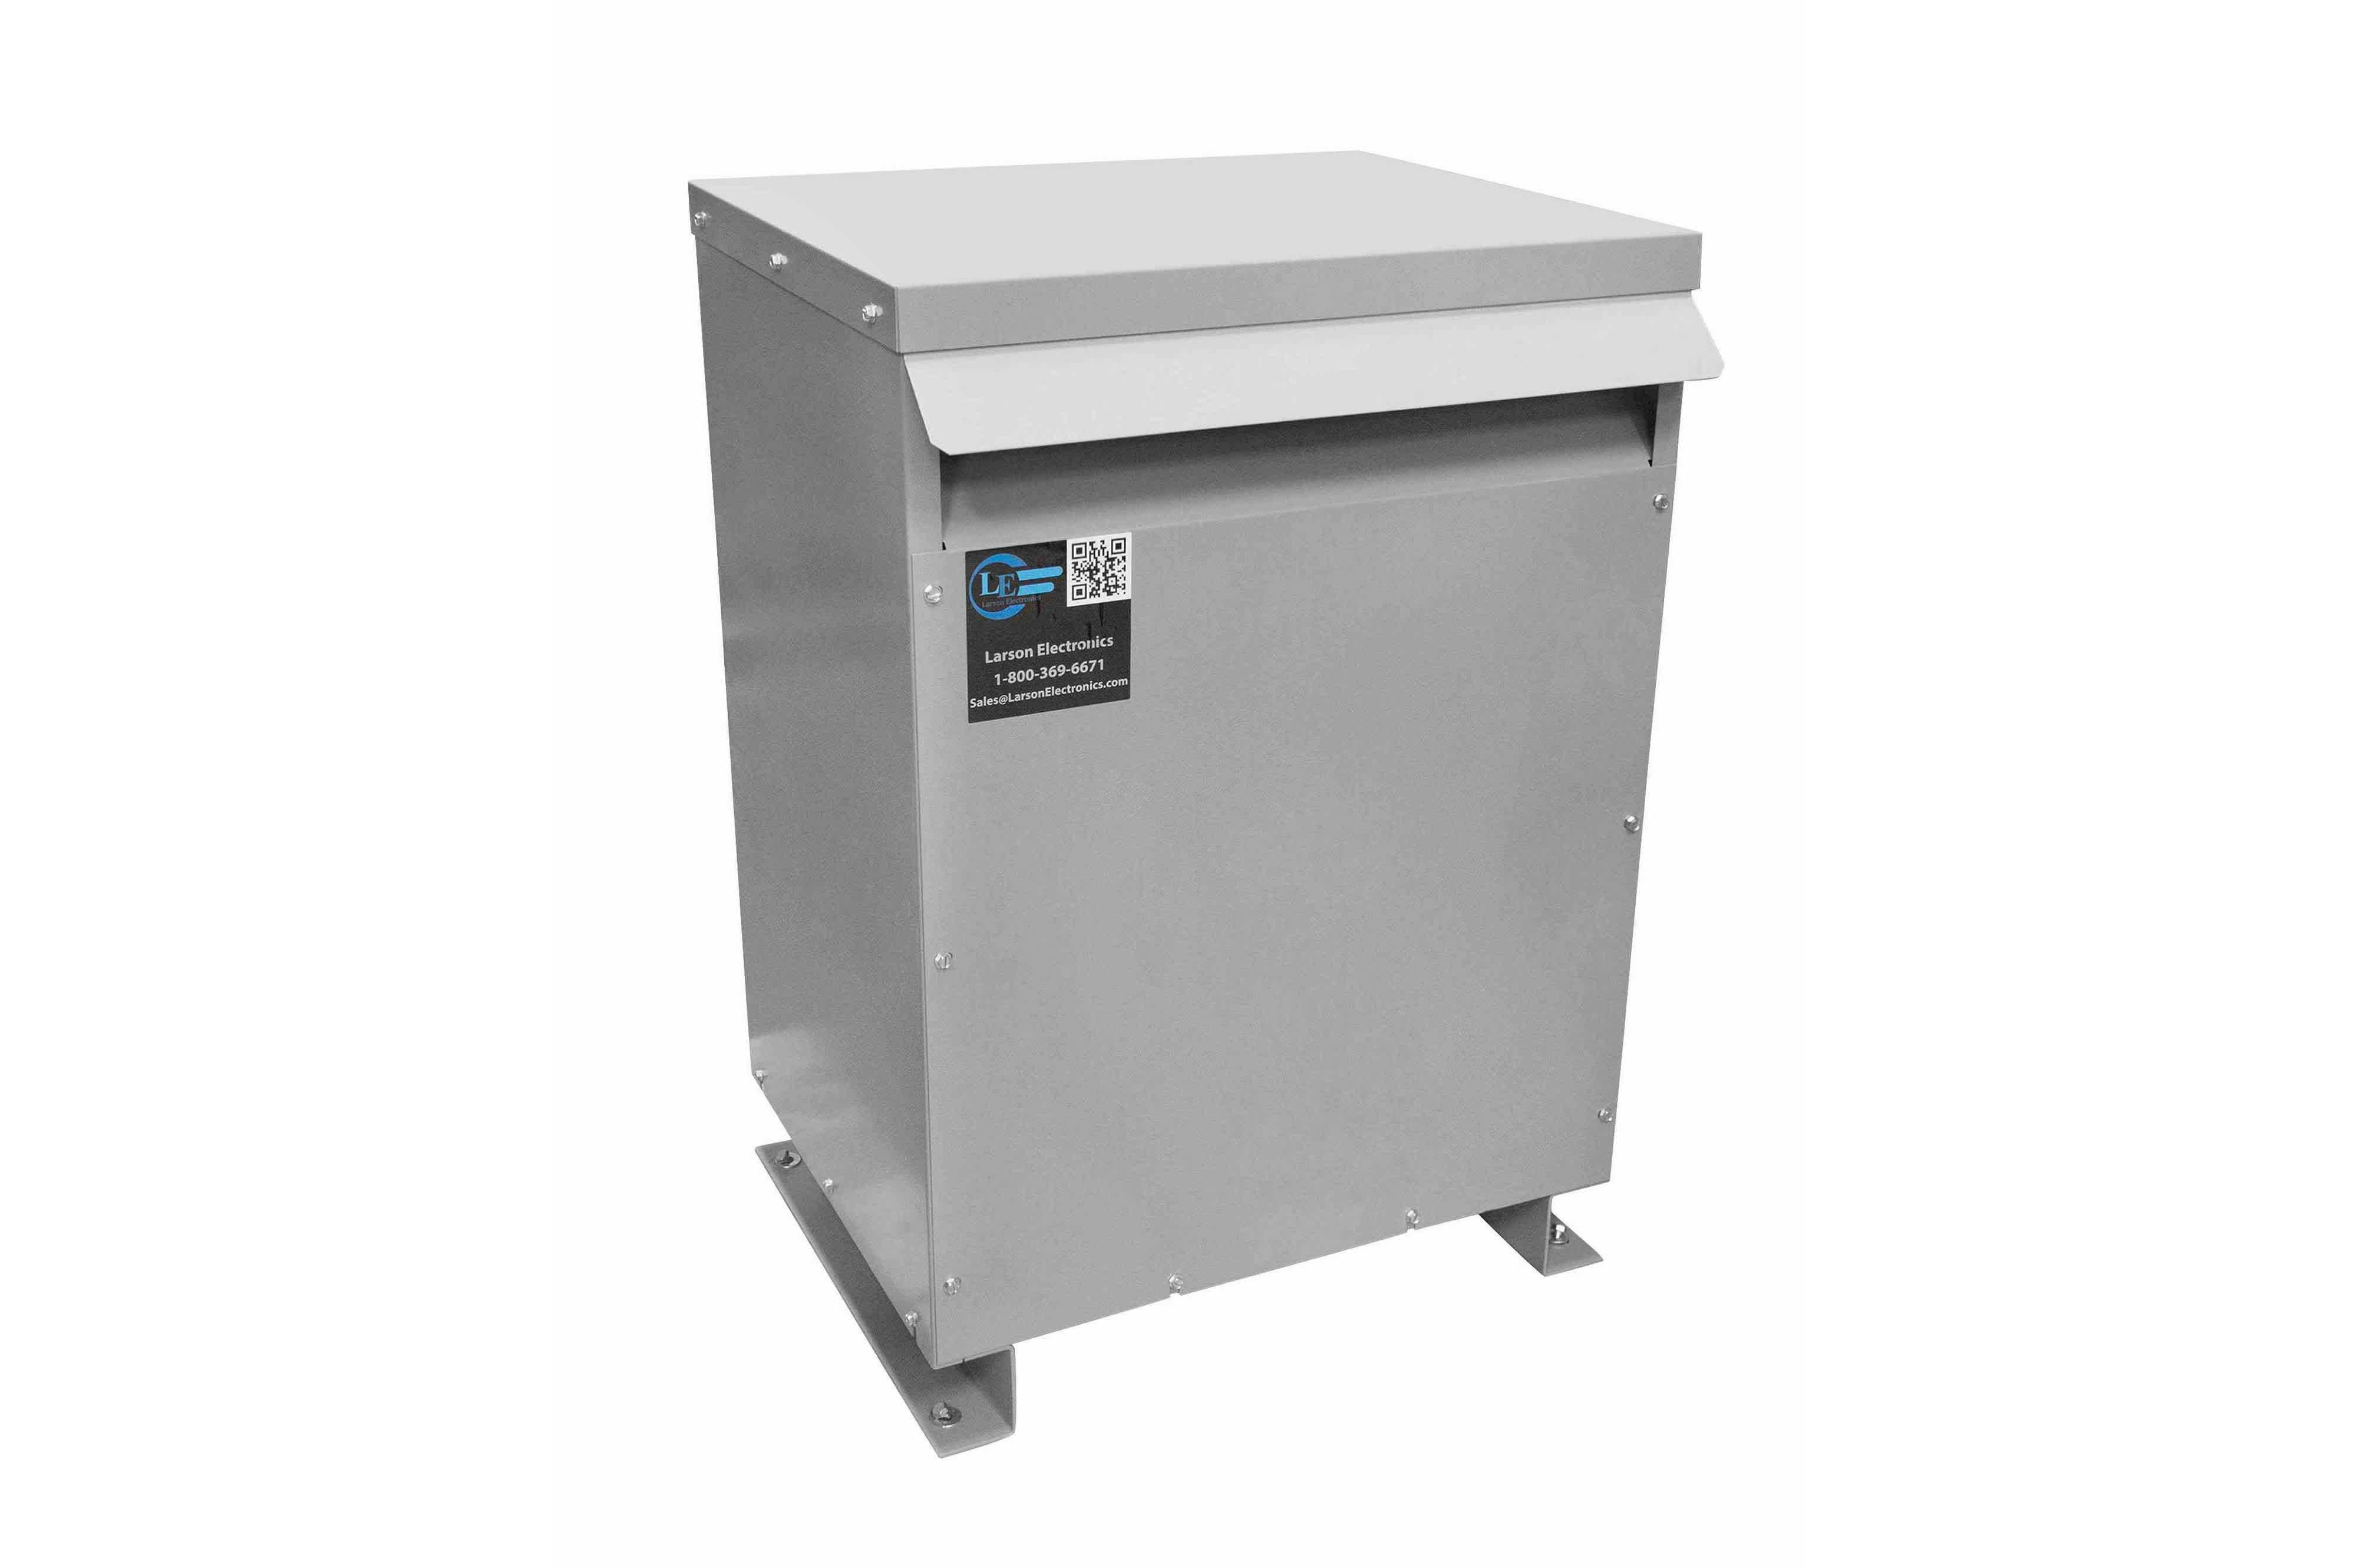 15 kVA 3PH DOE Transformer, 460V Delta Primary, 208Y/120 Wye-N Secondary, N3R, Ventilated, 60 Hz